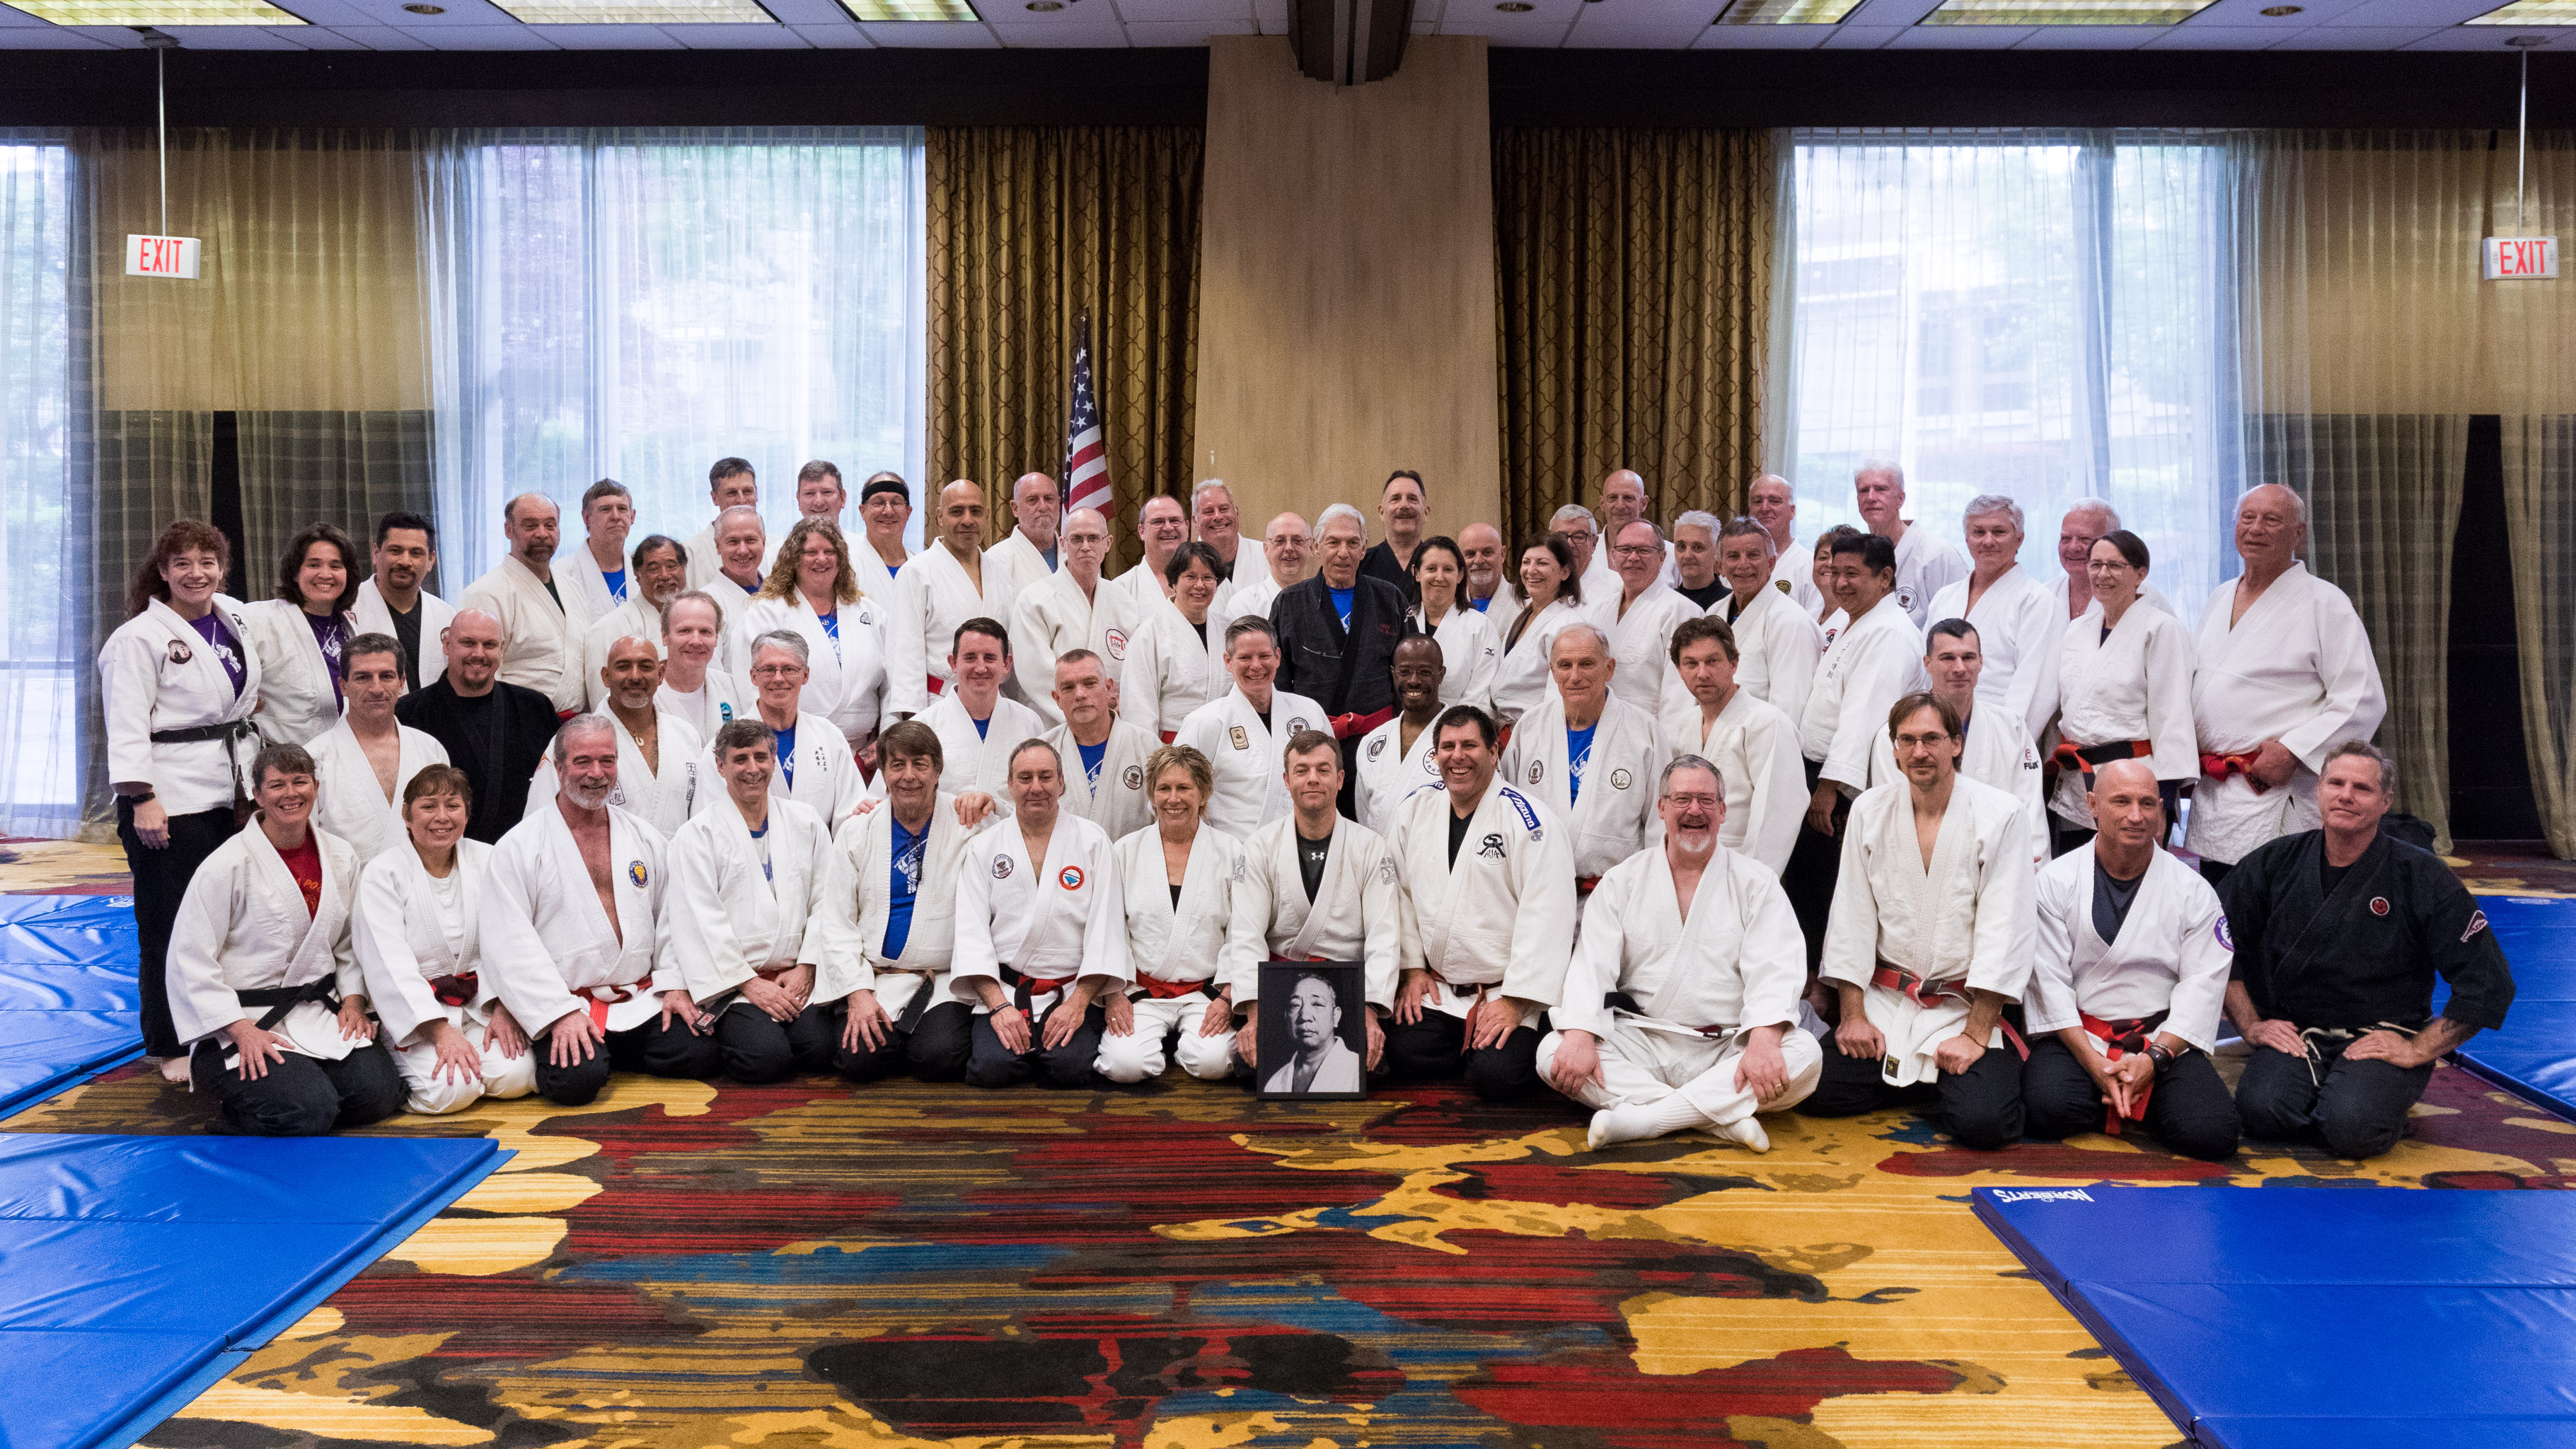 AJJF 2018 Convention Professors and Instructors